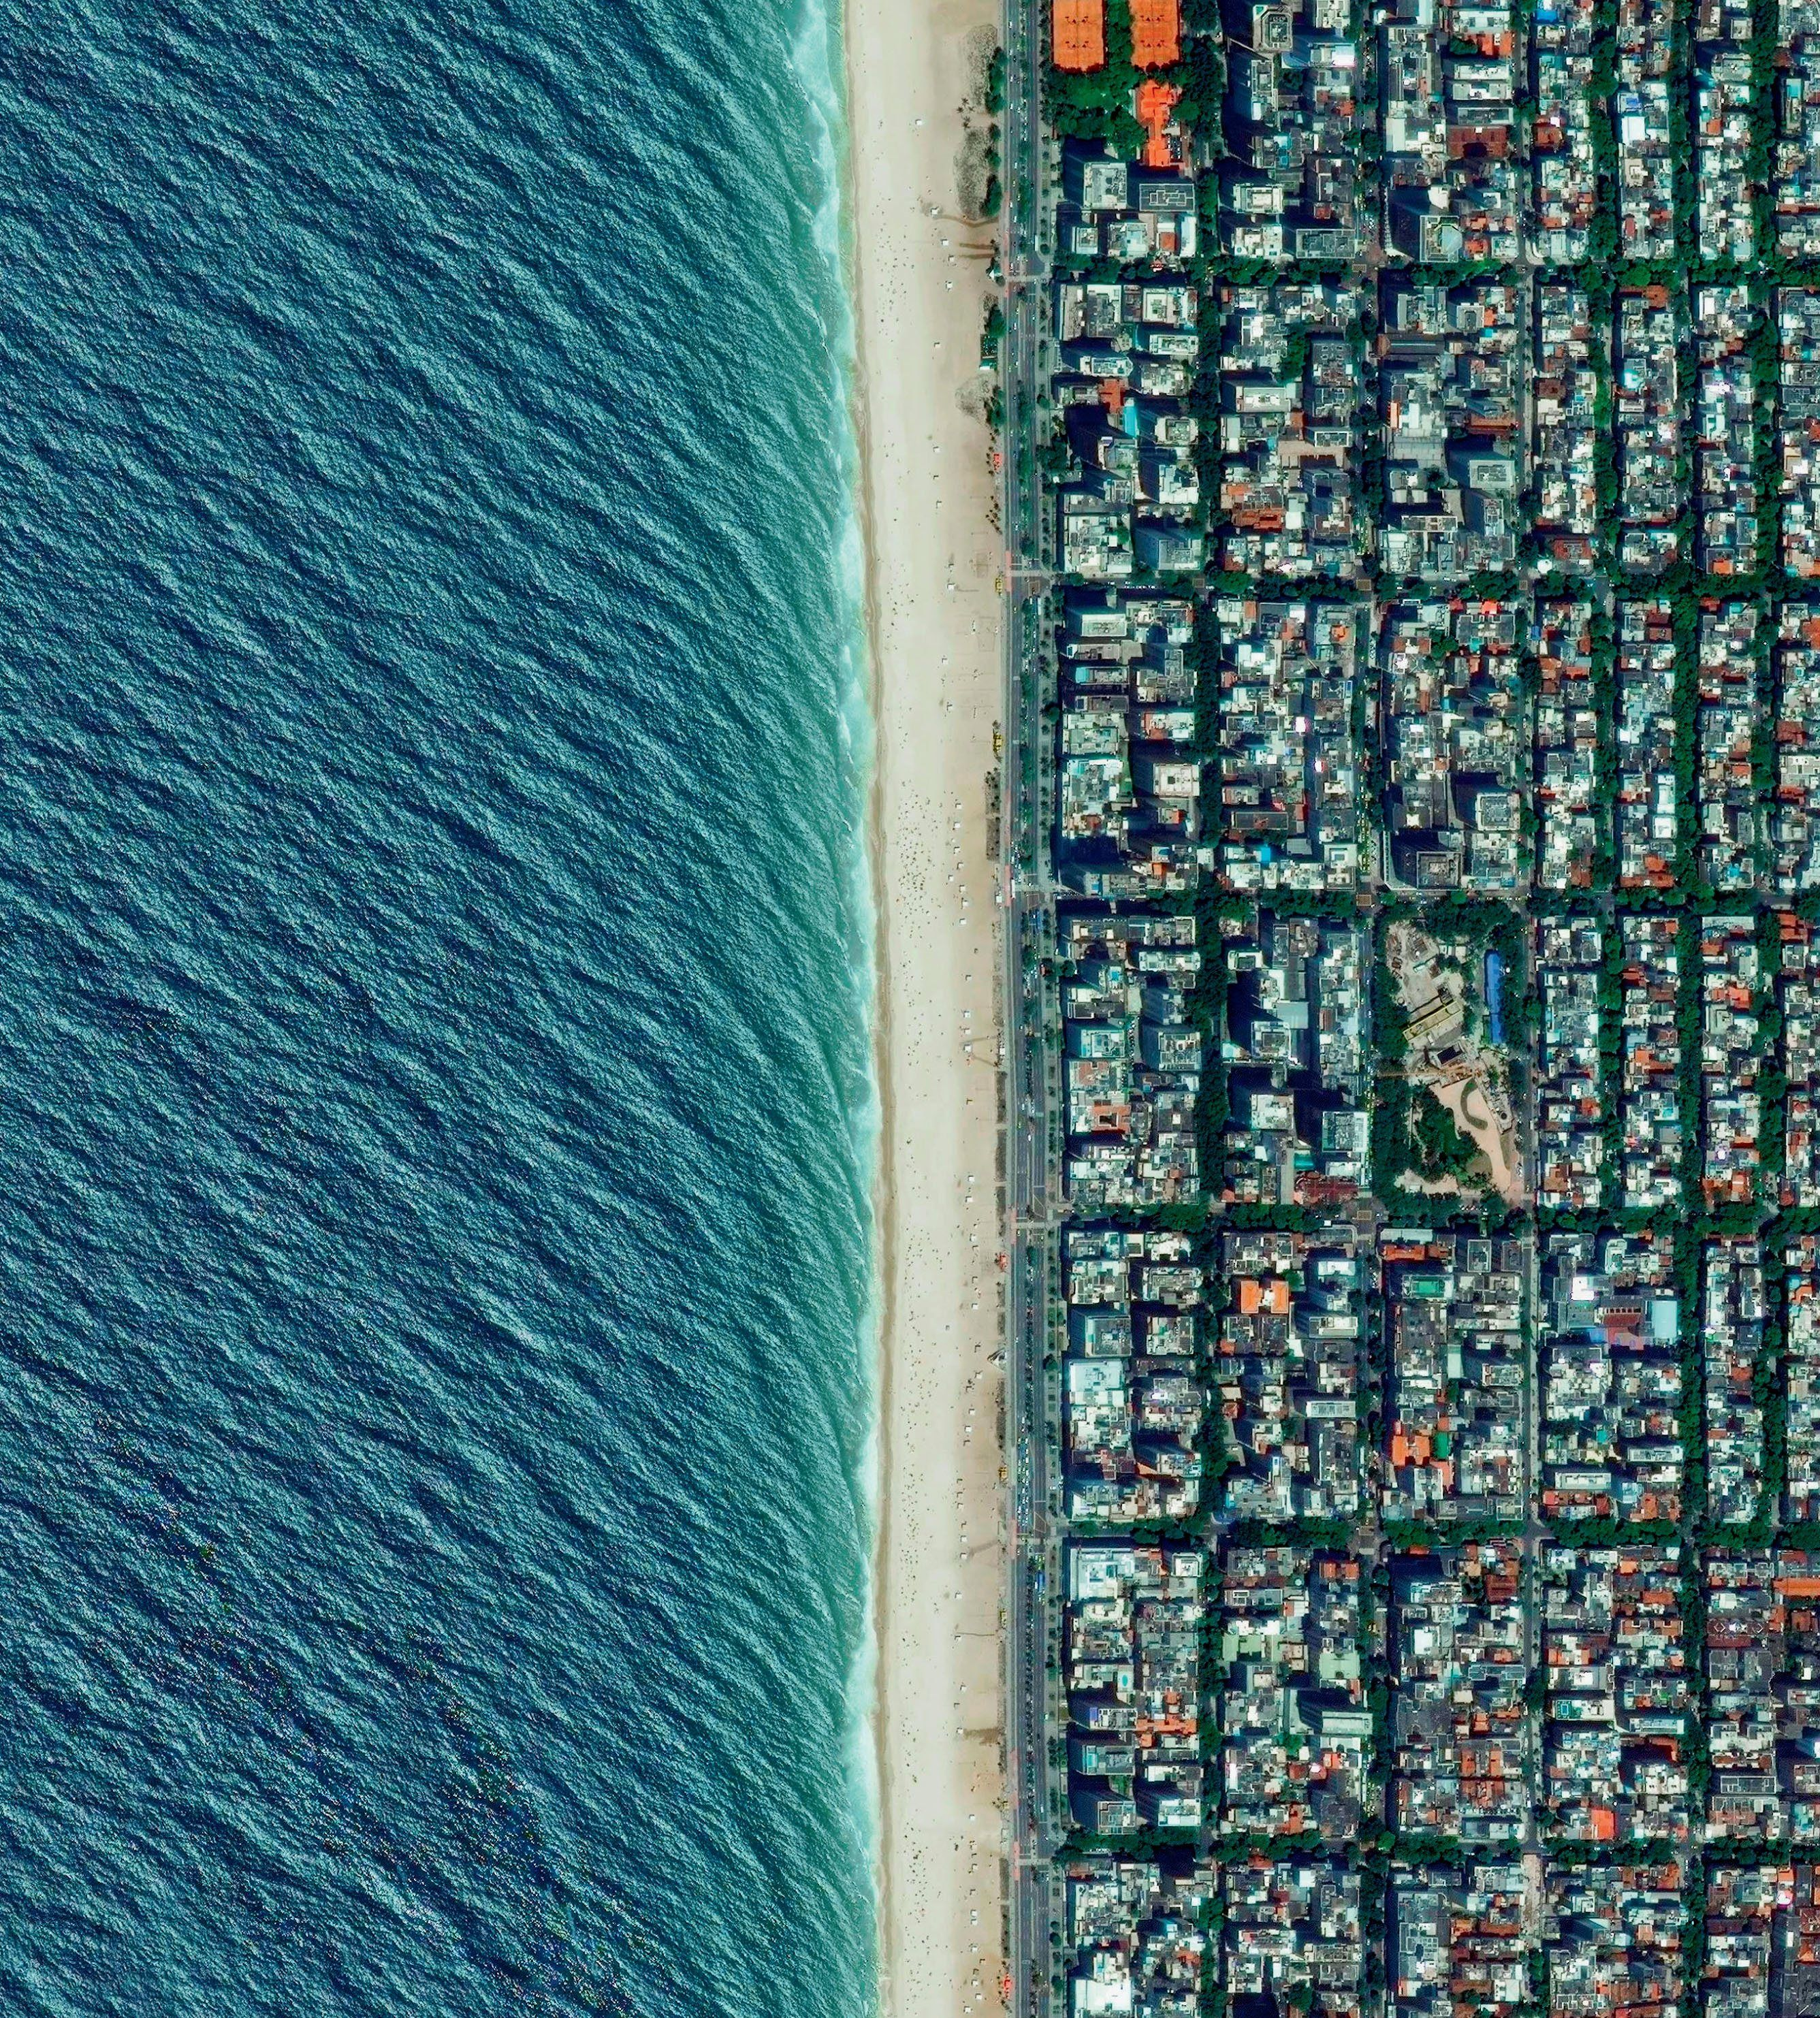 Ipanema beach is located in the South Zone of Rio de Janeiro, Brazil. Recognised as one of the most beautiful beaches in the world, the sand is divided into segments by lifeguard towers known as 'postos' Photograph: DigitalGlobe/Penguin Random House